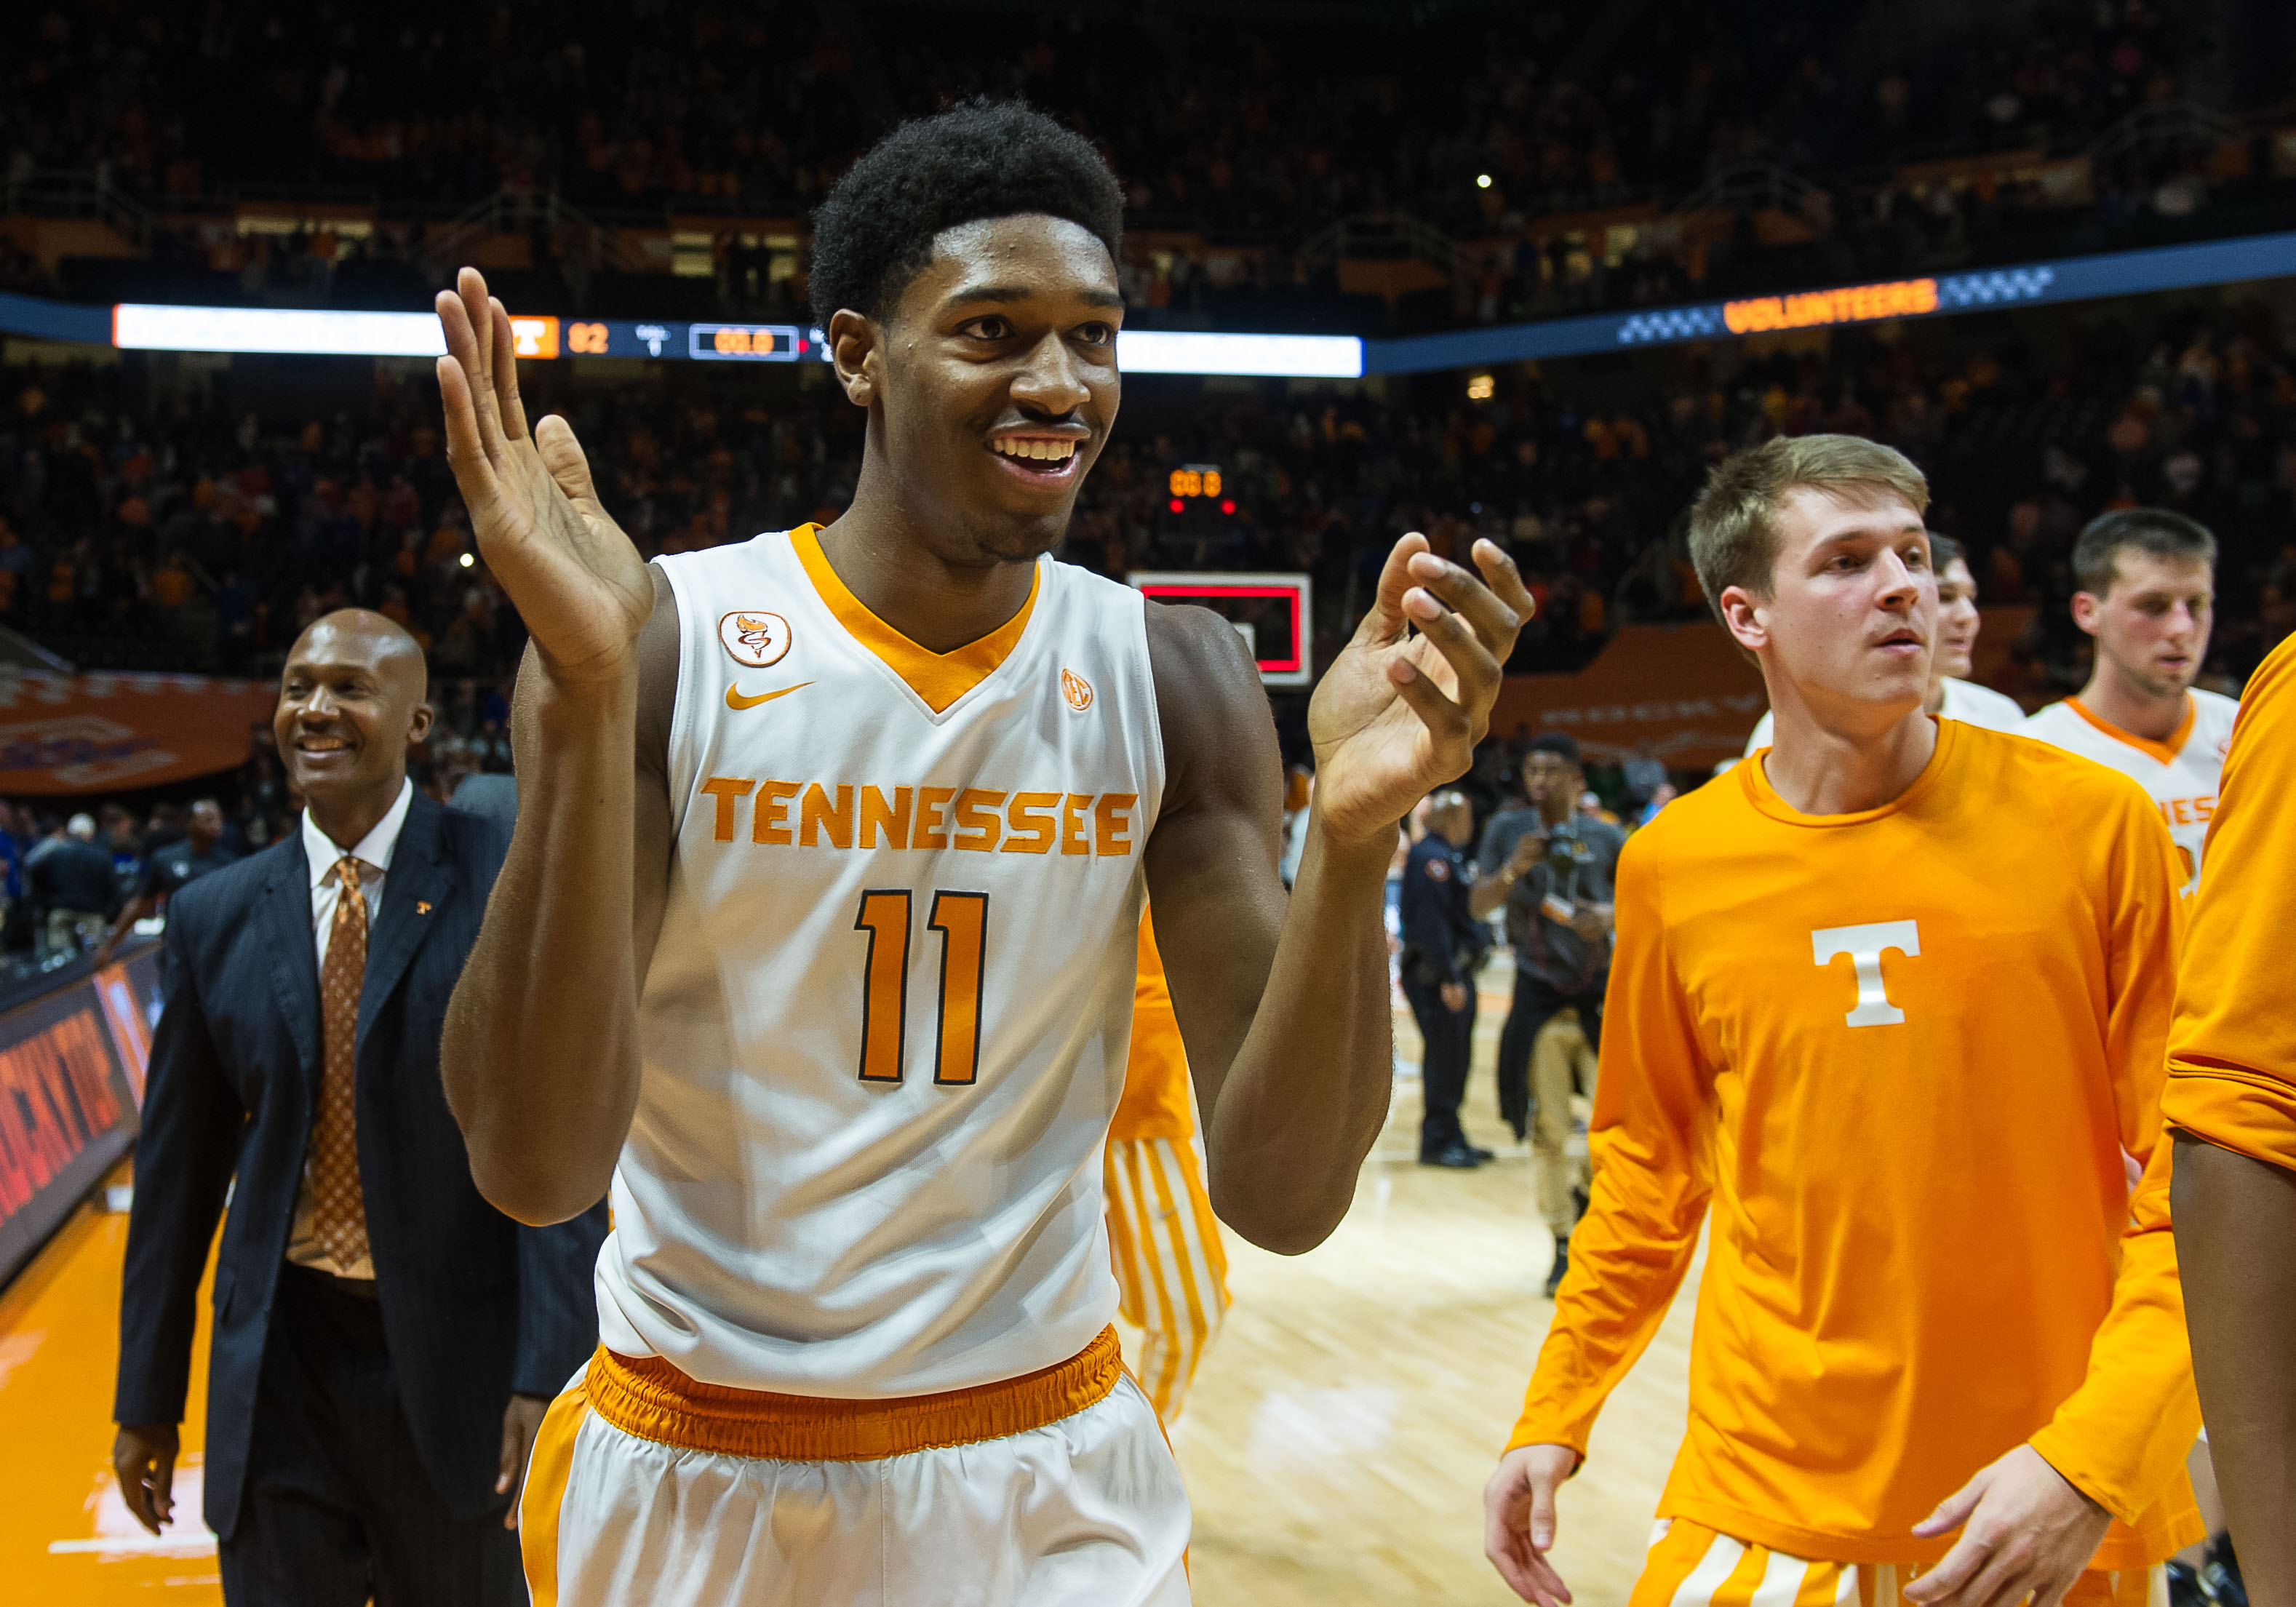 The Tennessee Volunteers mens basketball team is the collegiate mens basketball program for the University of TennesseeKnoxville The Volunteers commonly